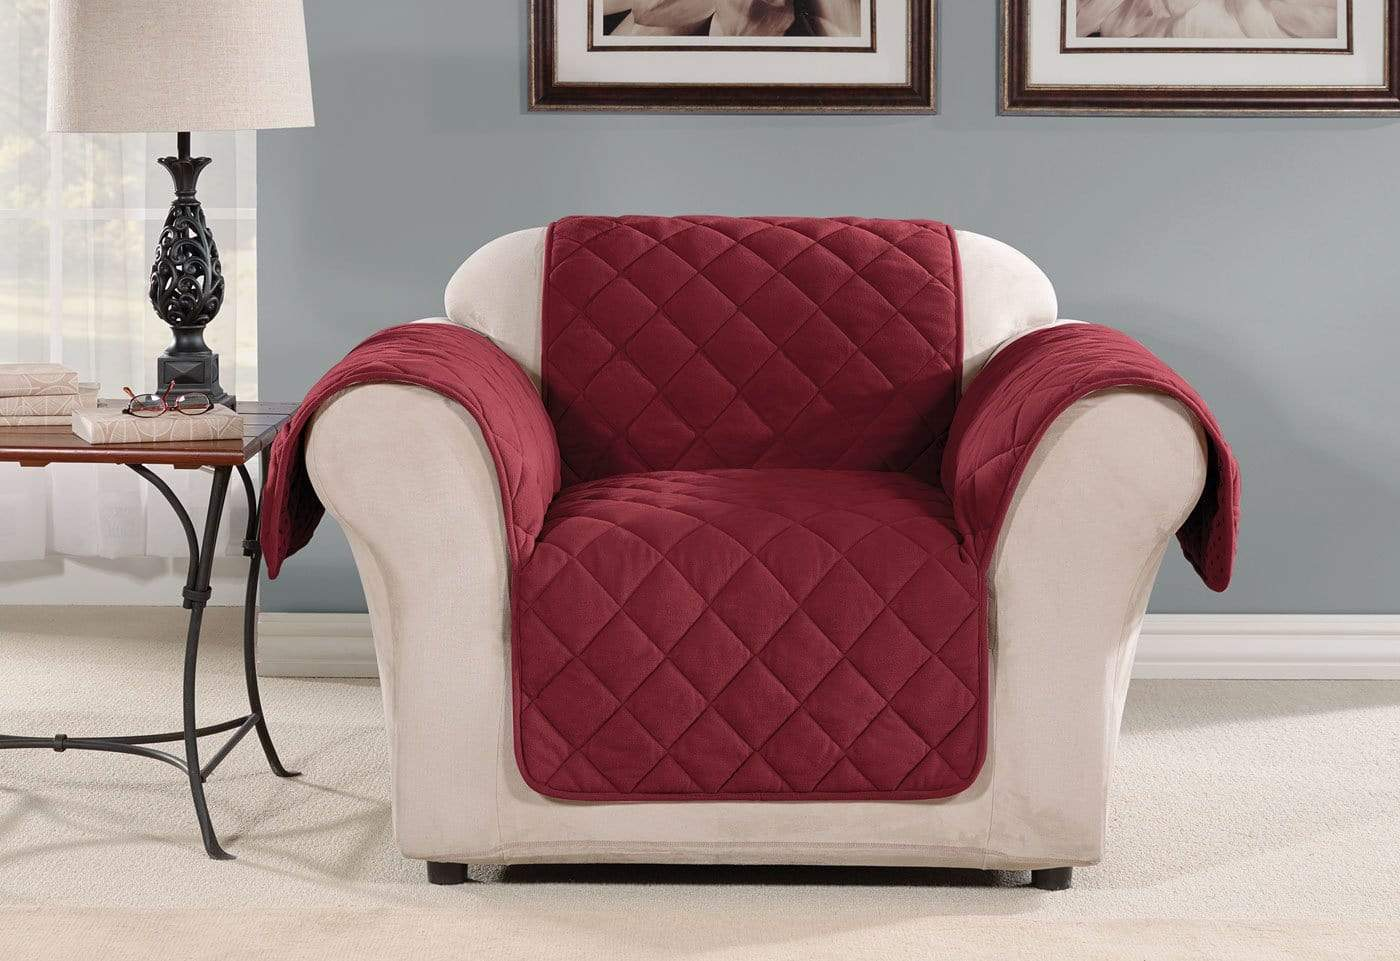 Oversized Microfleece Chair Furniture Cover Pet Furniture Cover Machine Washable - Chair / Burgundy